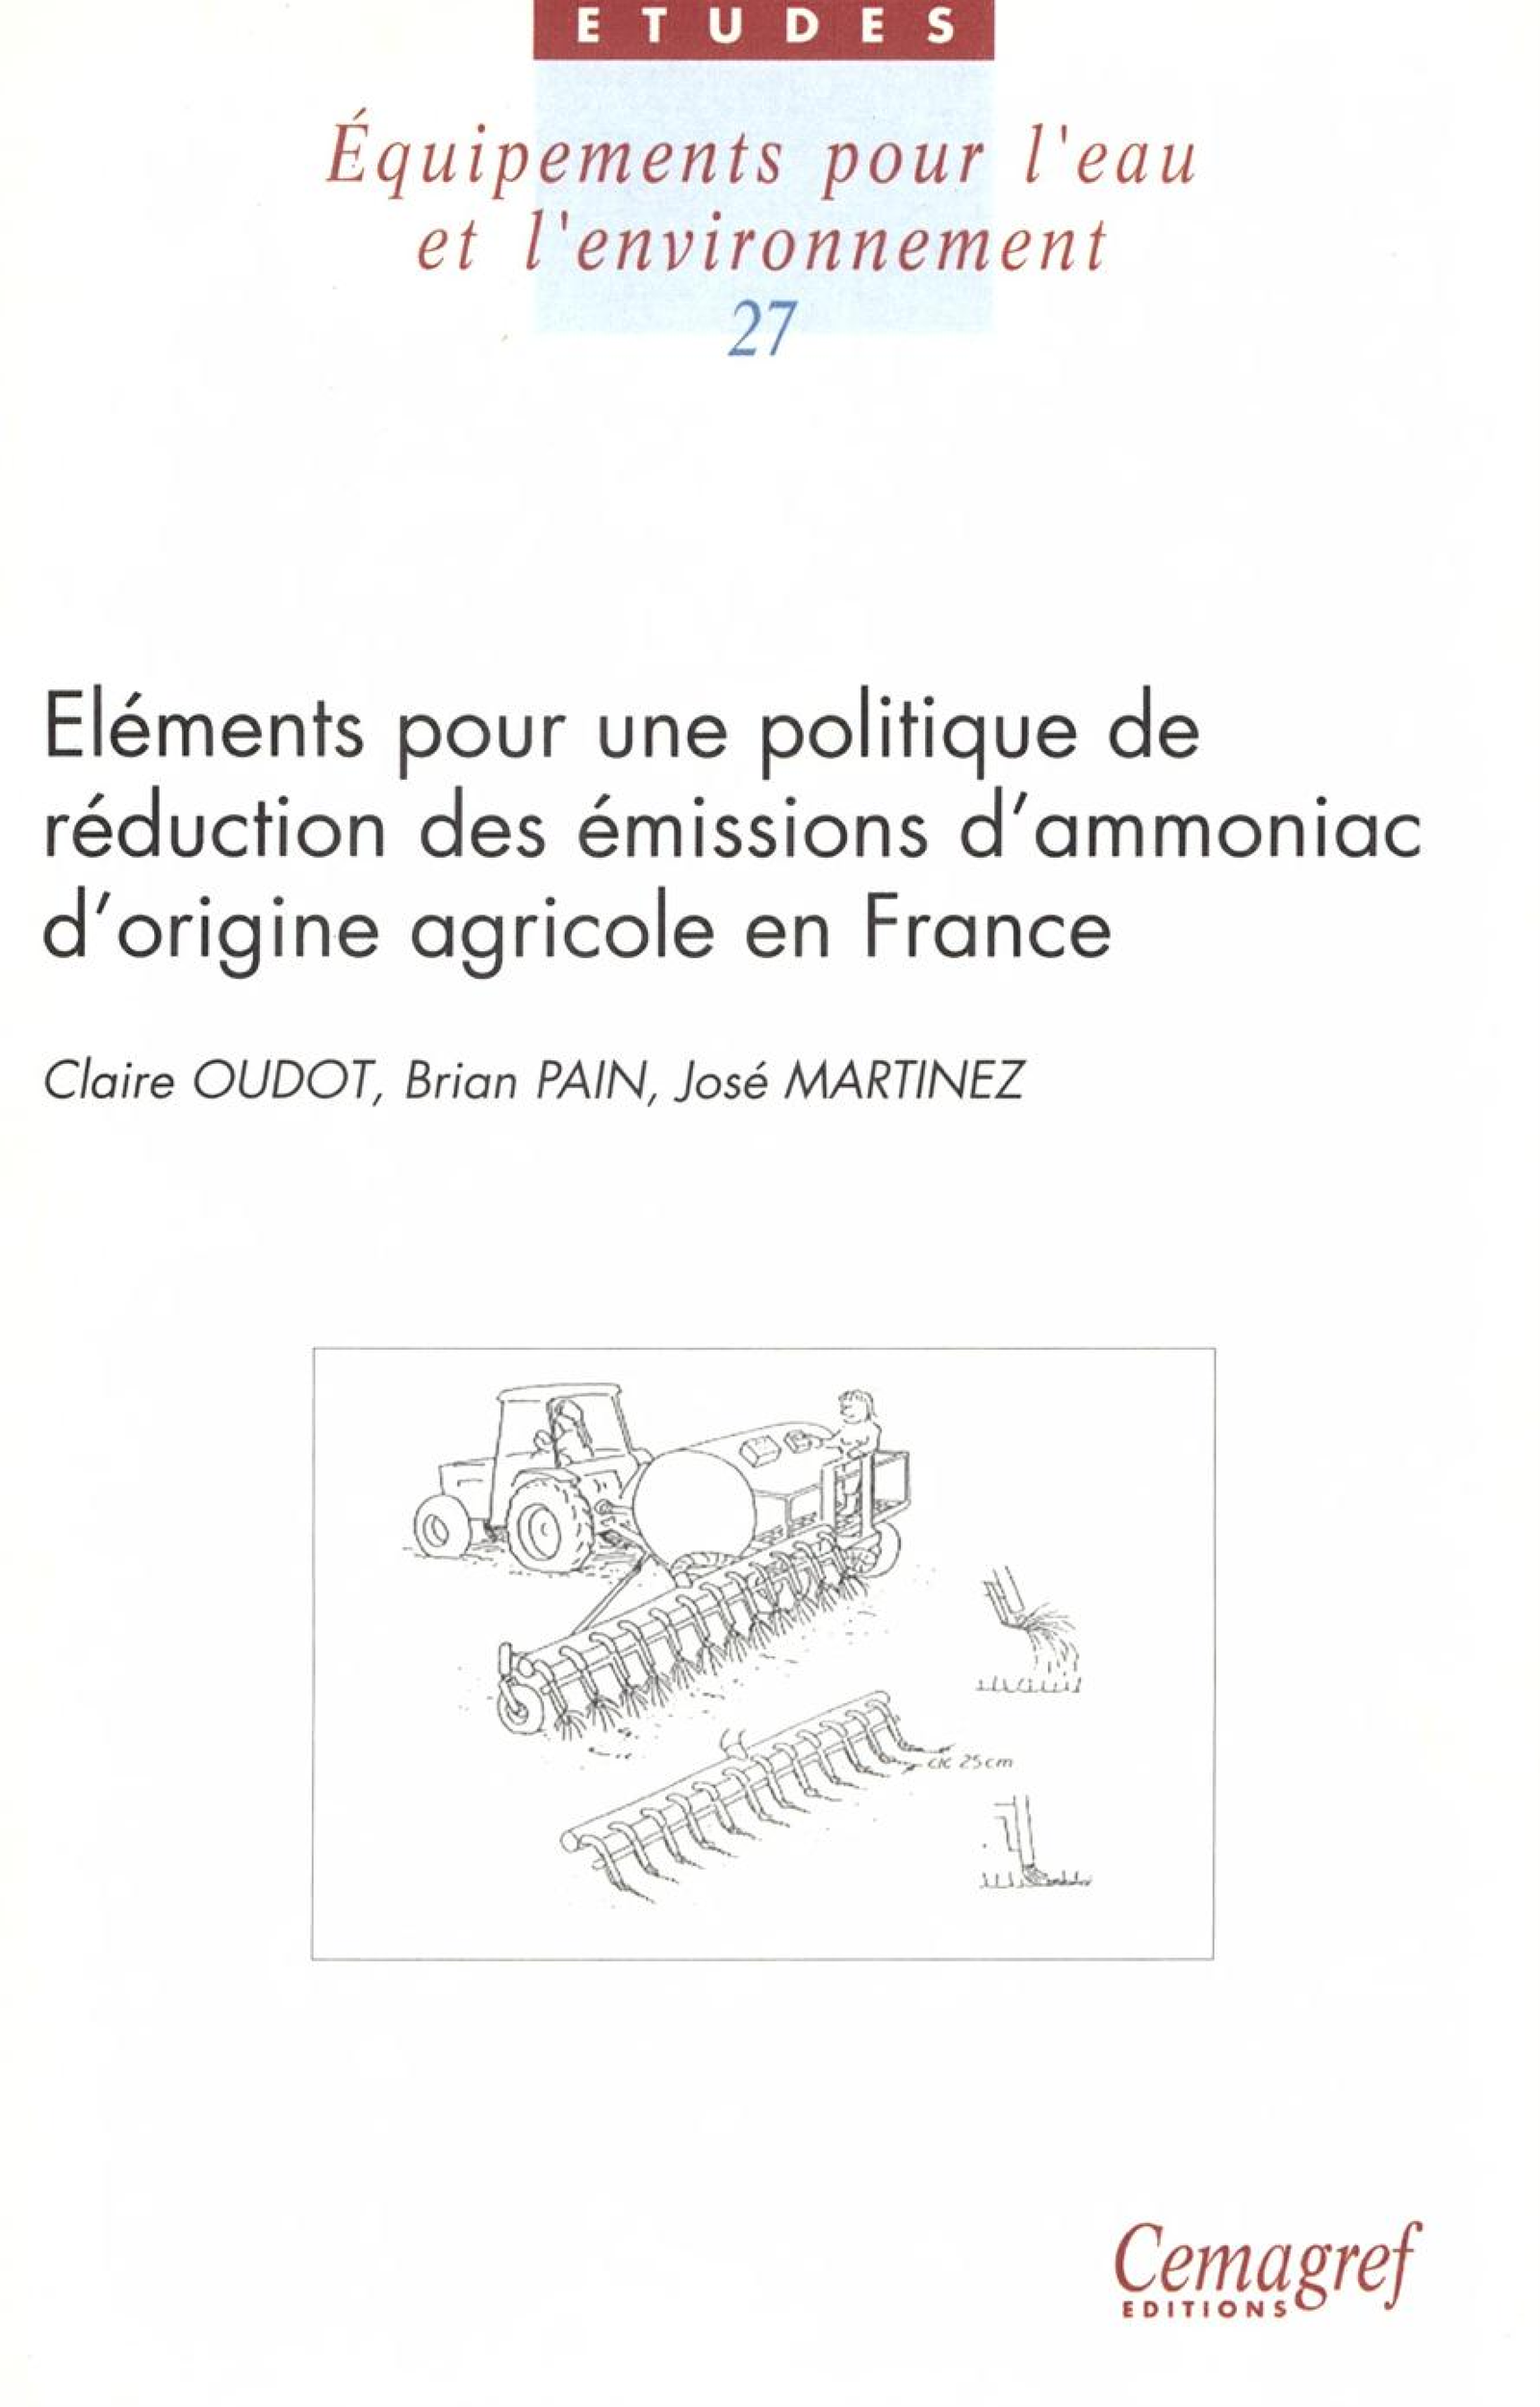 Éléments pour une politique de réduction des émissions d'ammoniac d'origine agricole en France. Considerations for a Policy to Reduce Ammonia Emissions from Agriculture in France